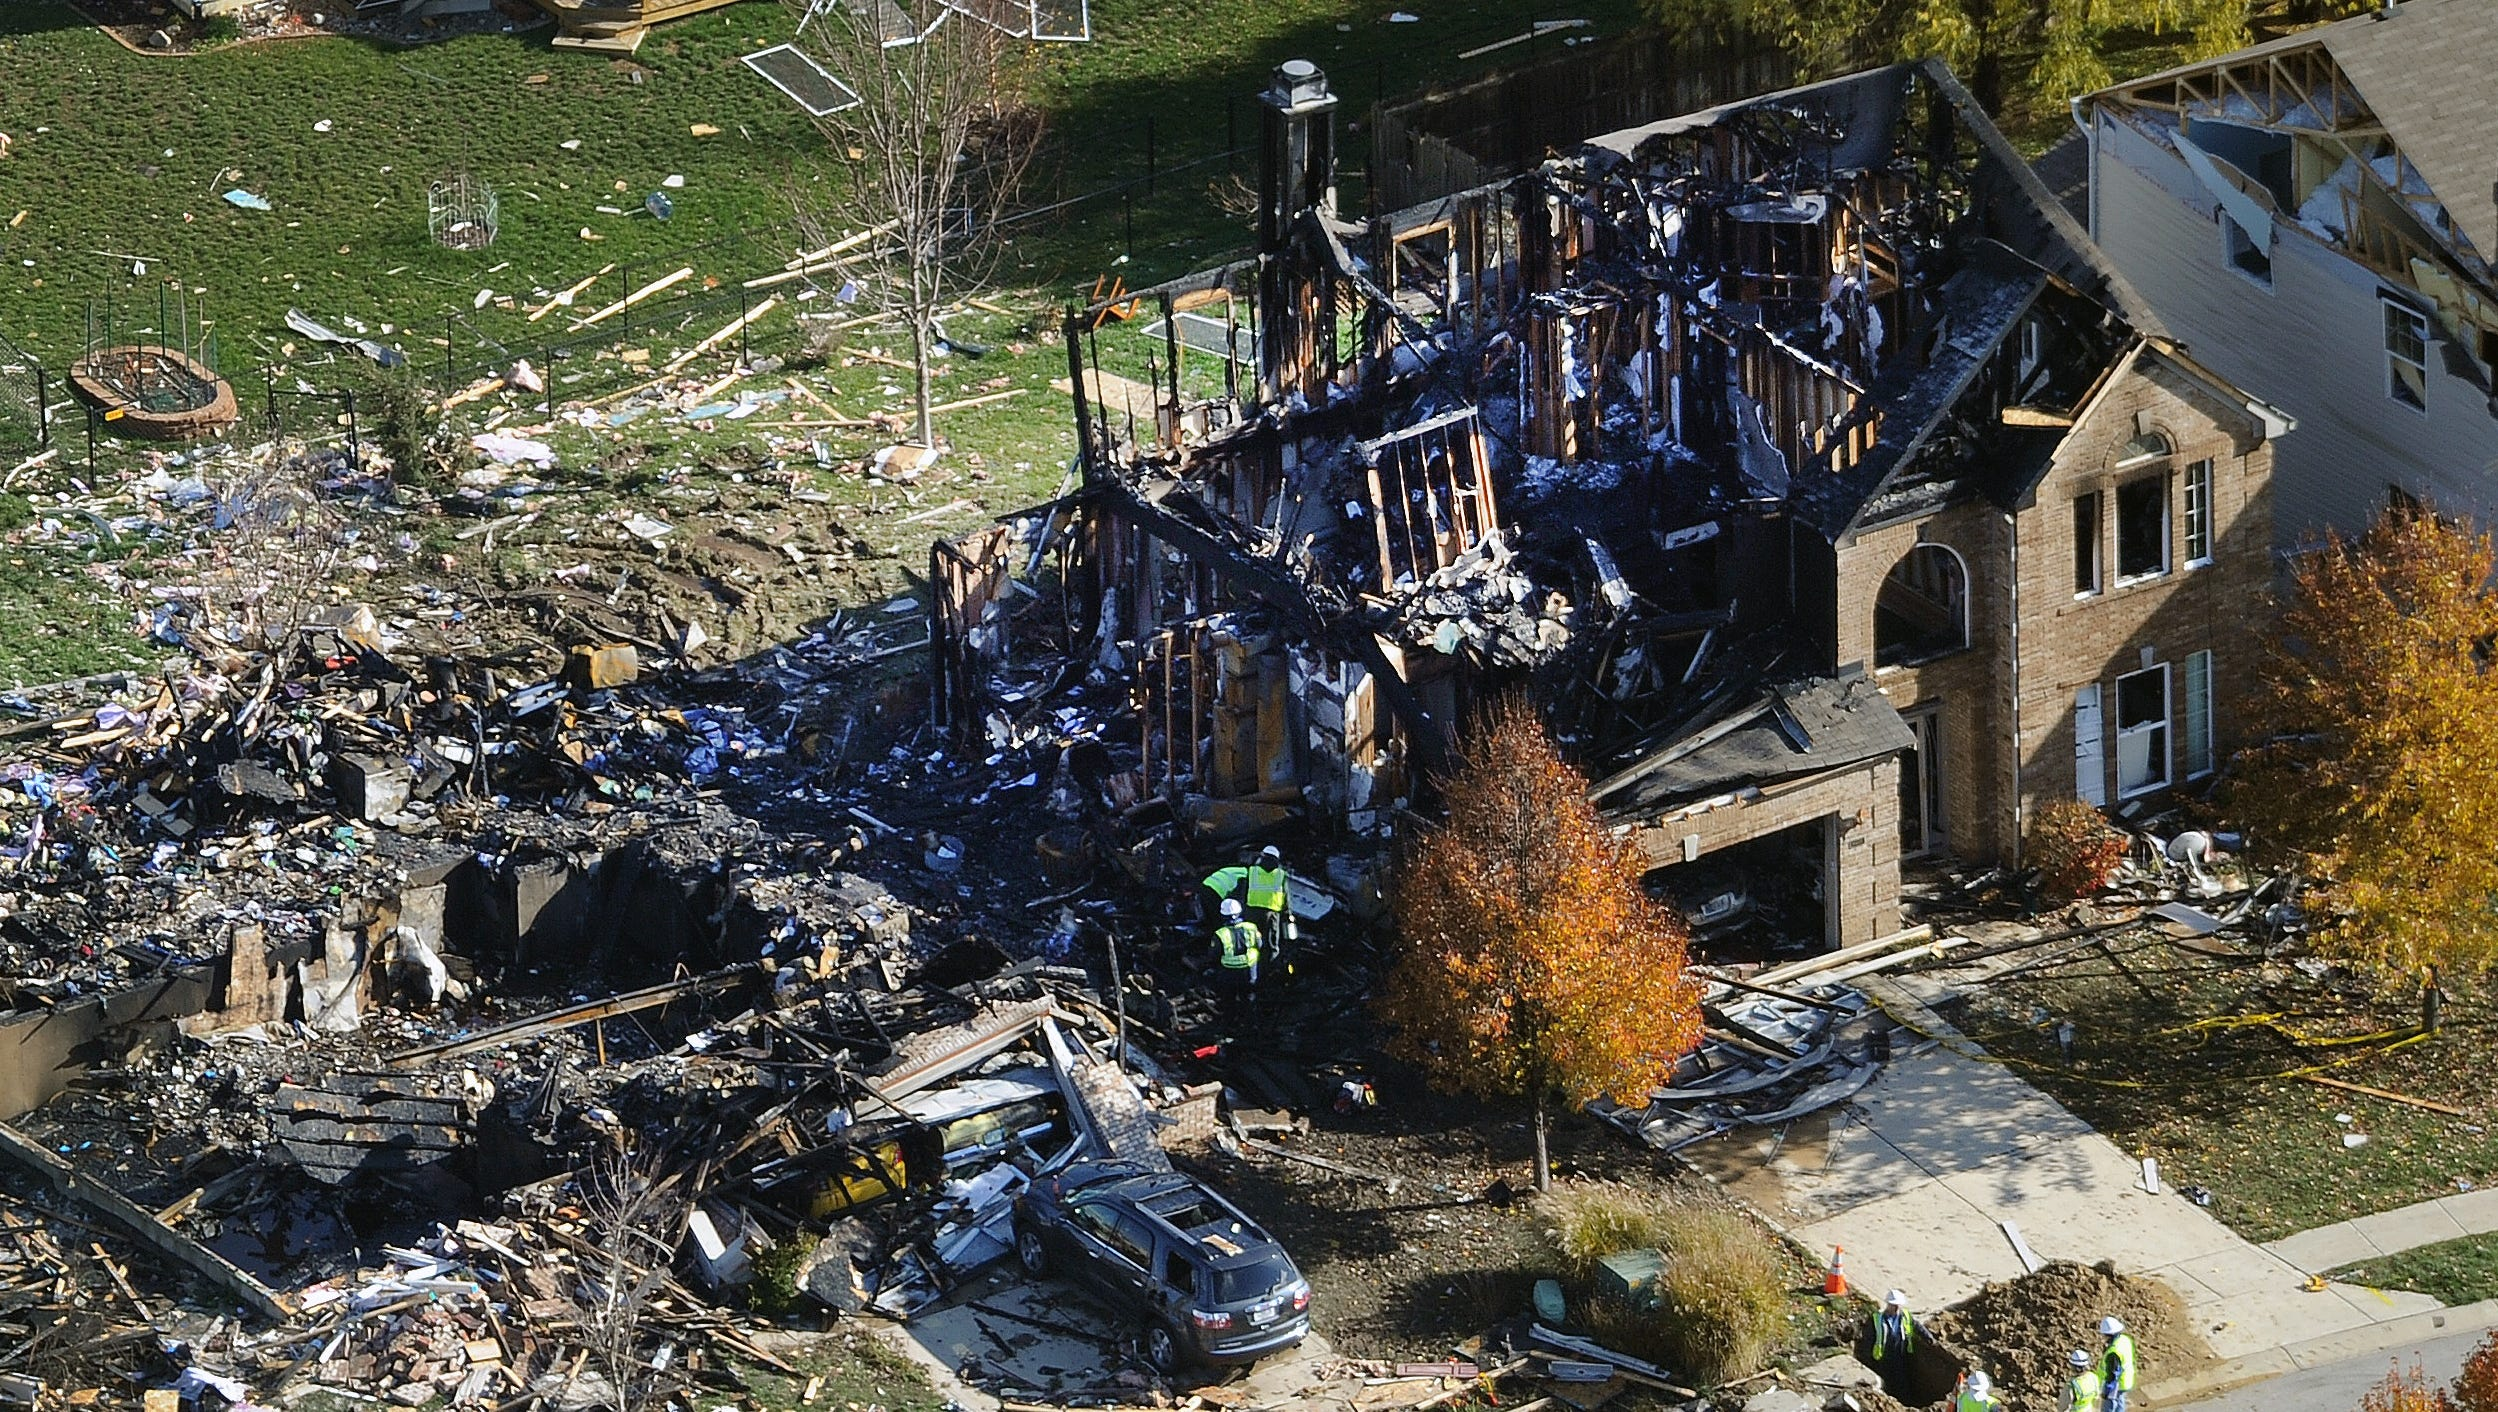 Homeowner At Center Of Ind Explosion In Shock